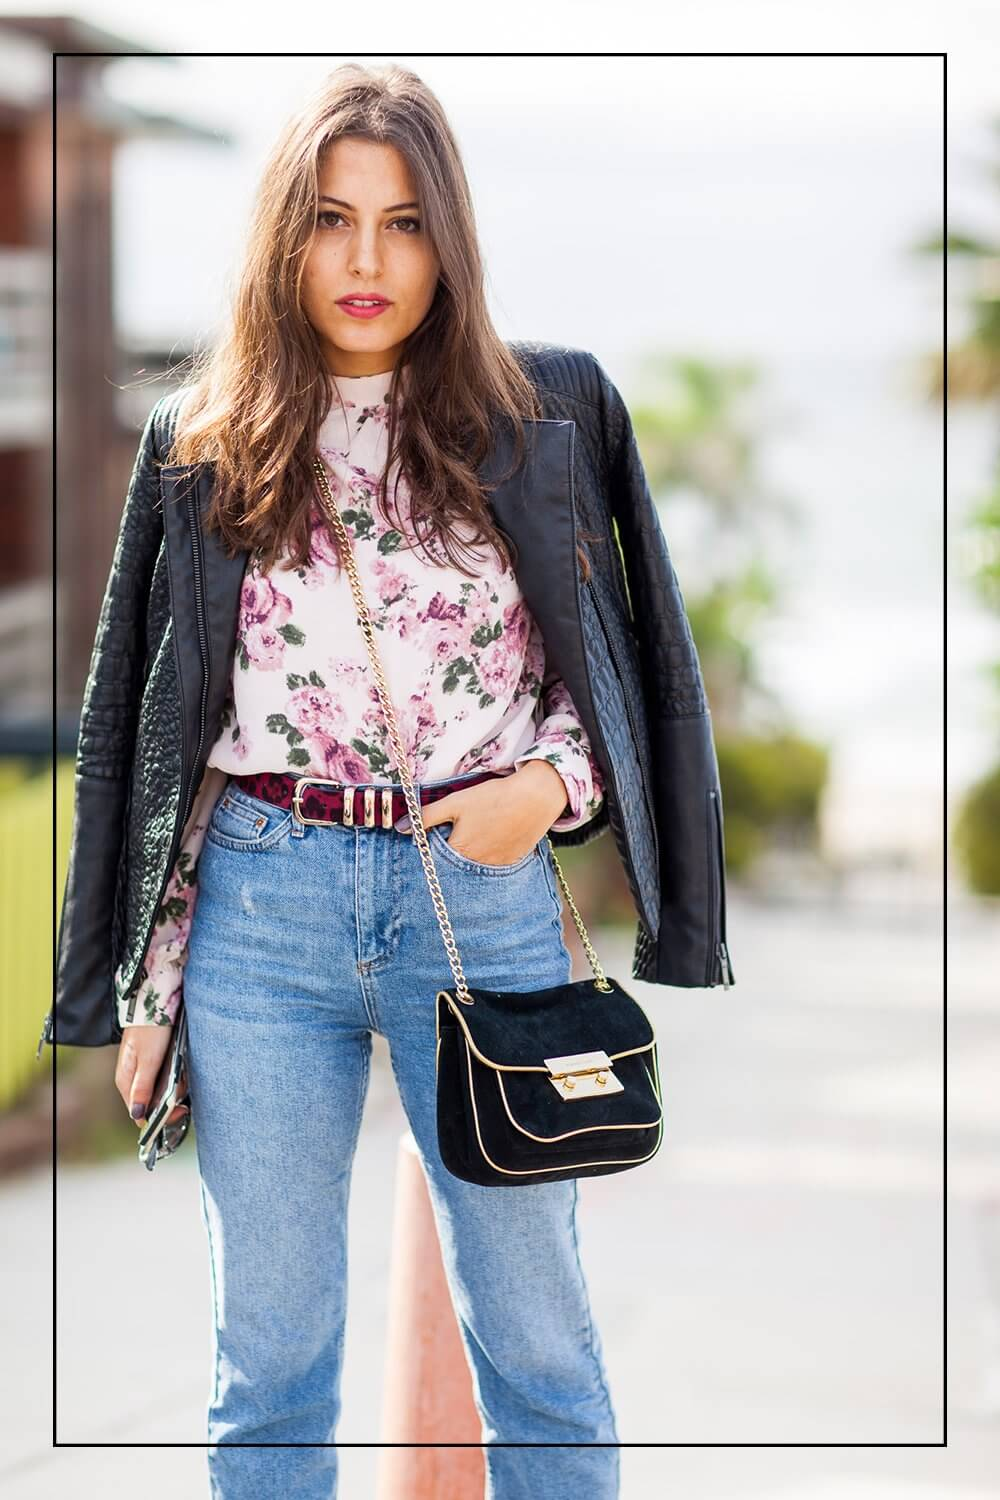 Love Of Mode Floral Prints In Fall